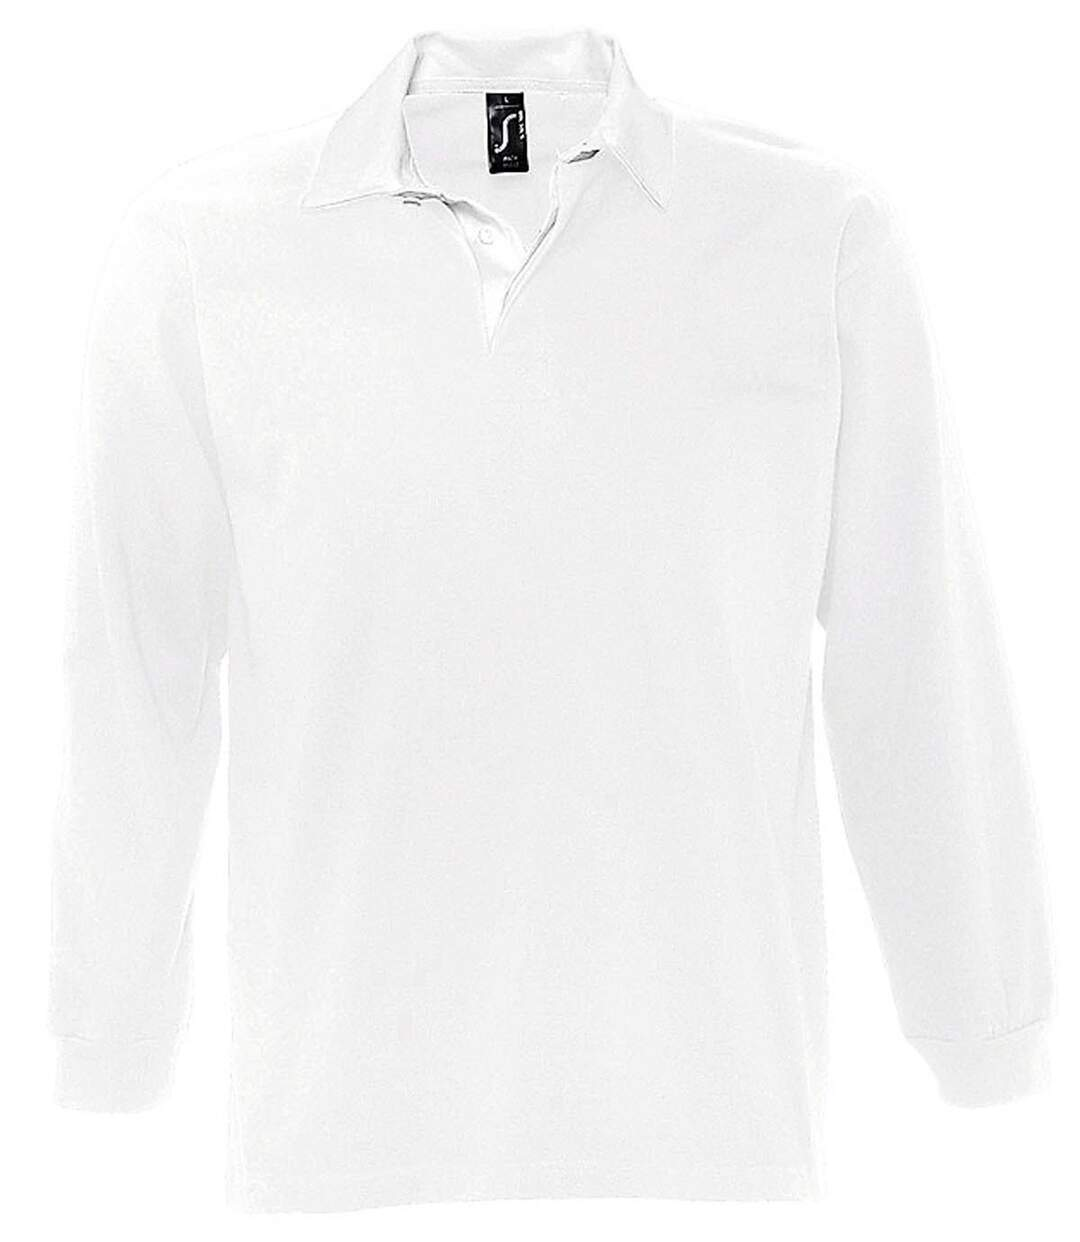 Polo rugby manches longues HOMME - 11313 - blanc